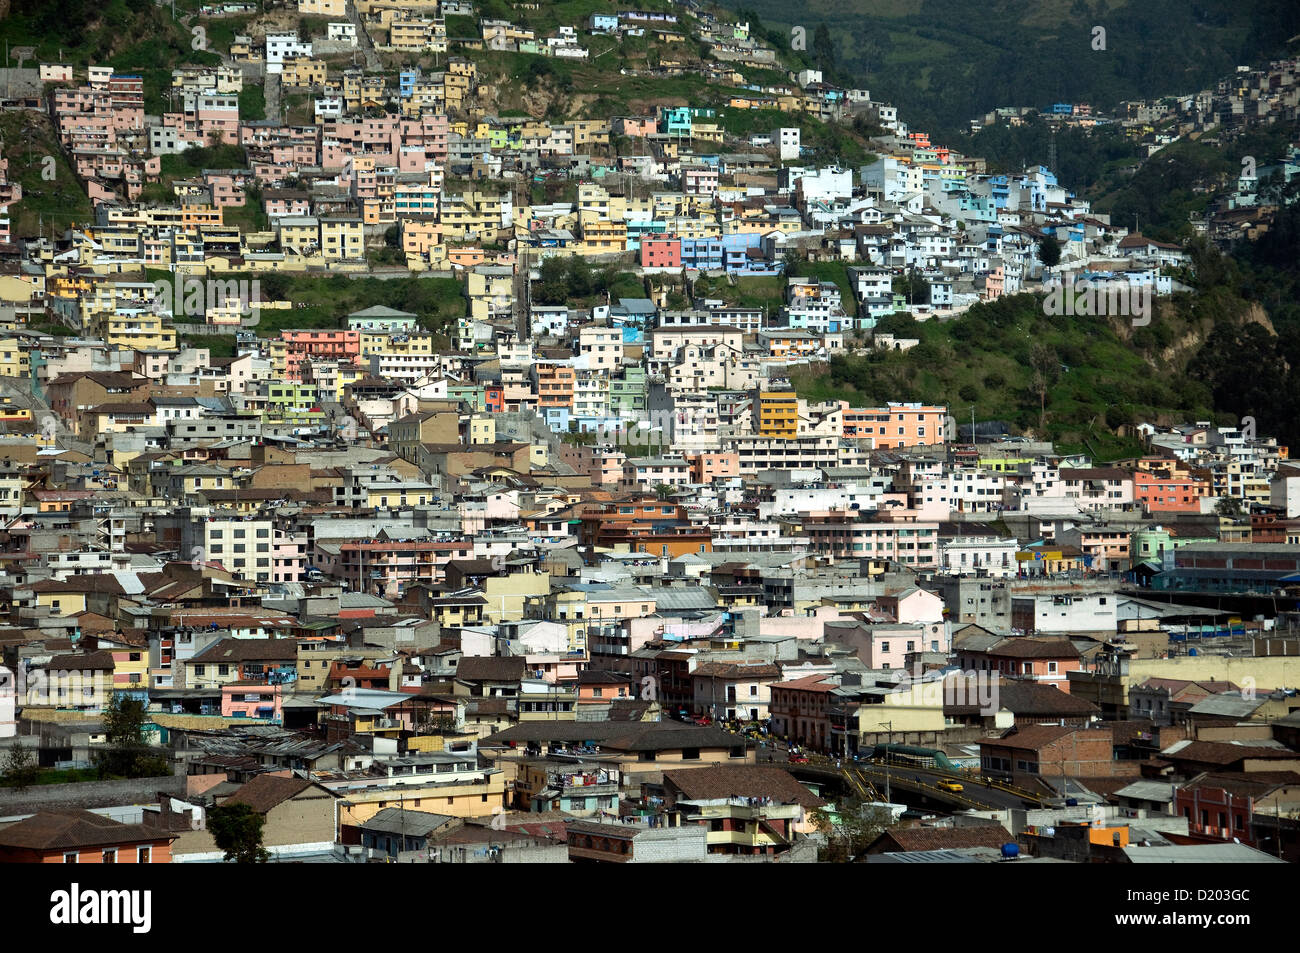 Massed houses, home to some of Quito's more than 2.2 million population, covers a hillside outside Quito, Ecuador's - Stock Image